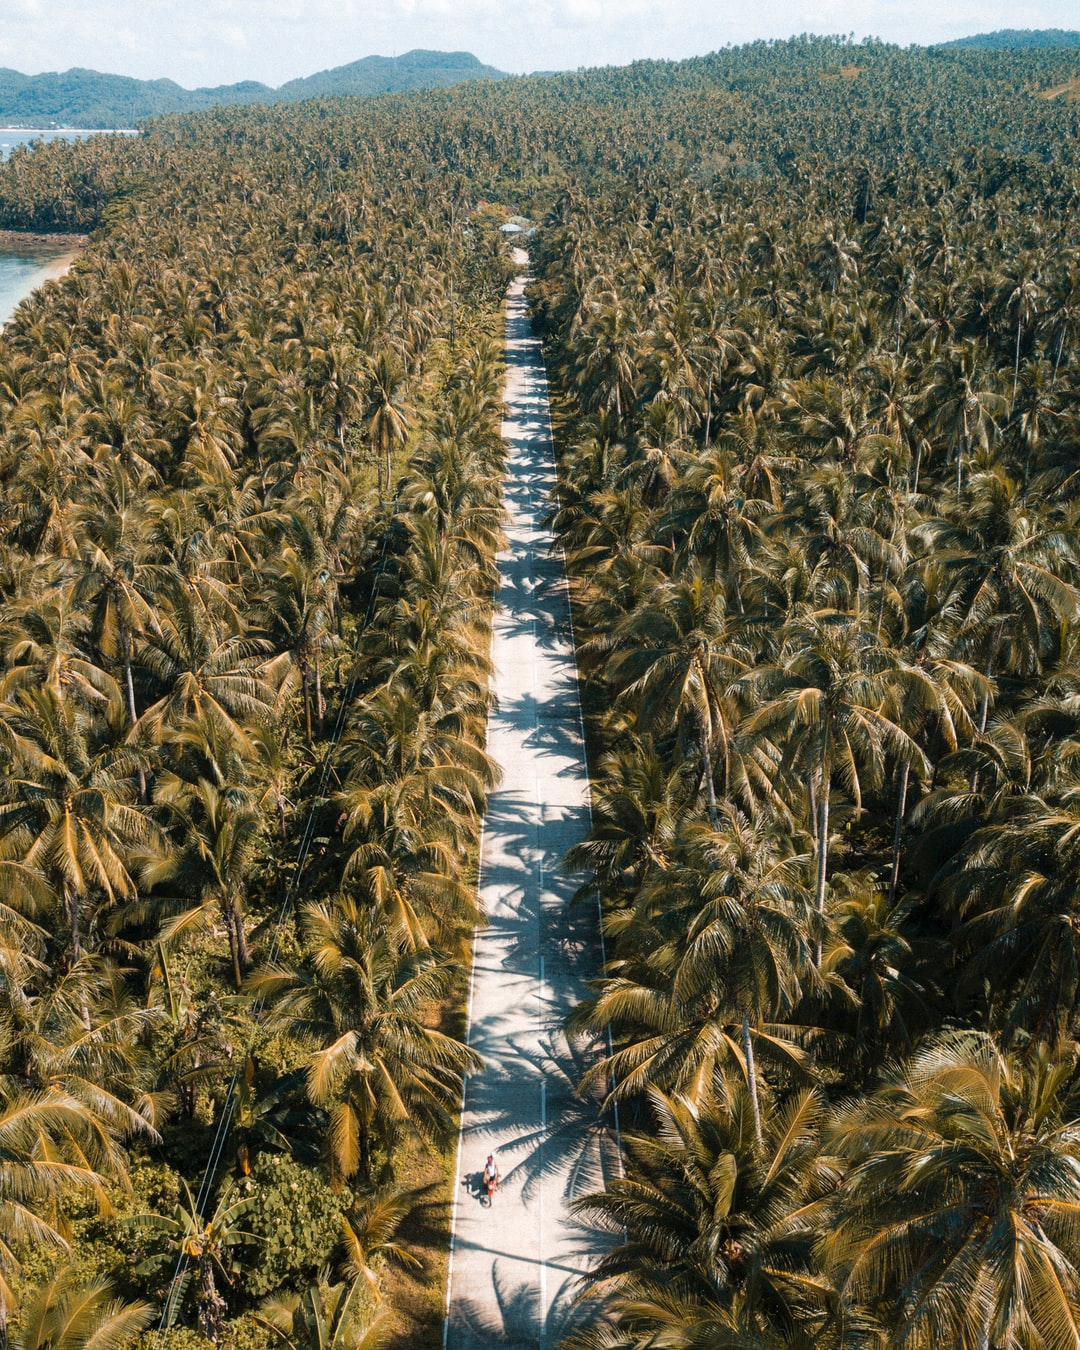 Biking through the thousands of coconut trees in Siargao  An experience unlike anything else  @michaelslouie